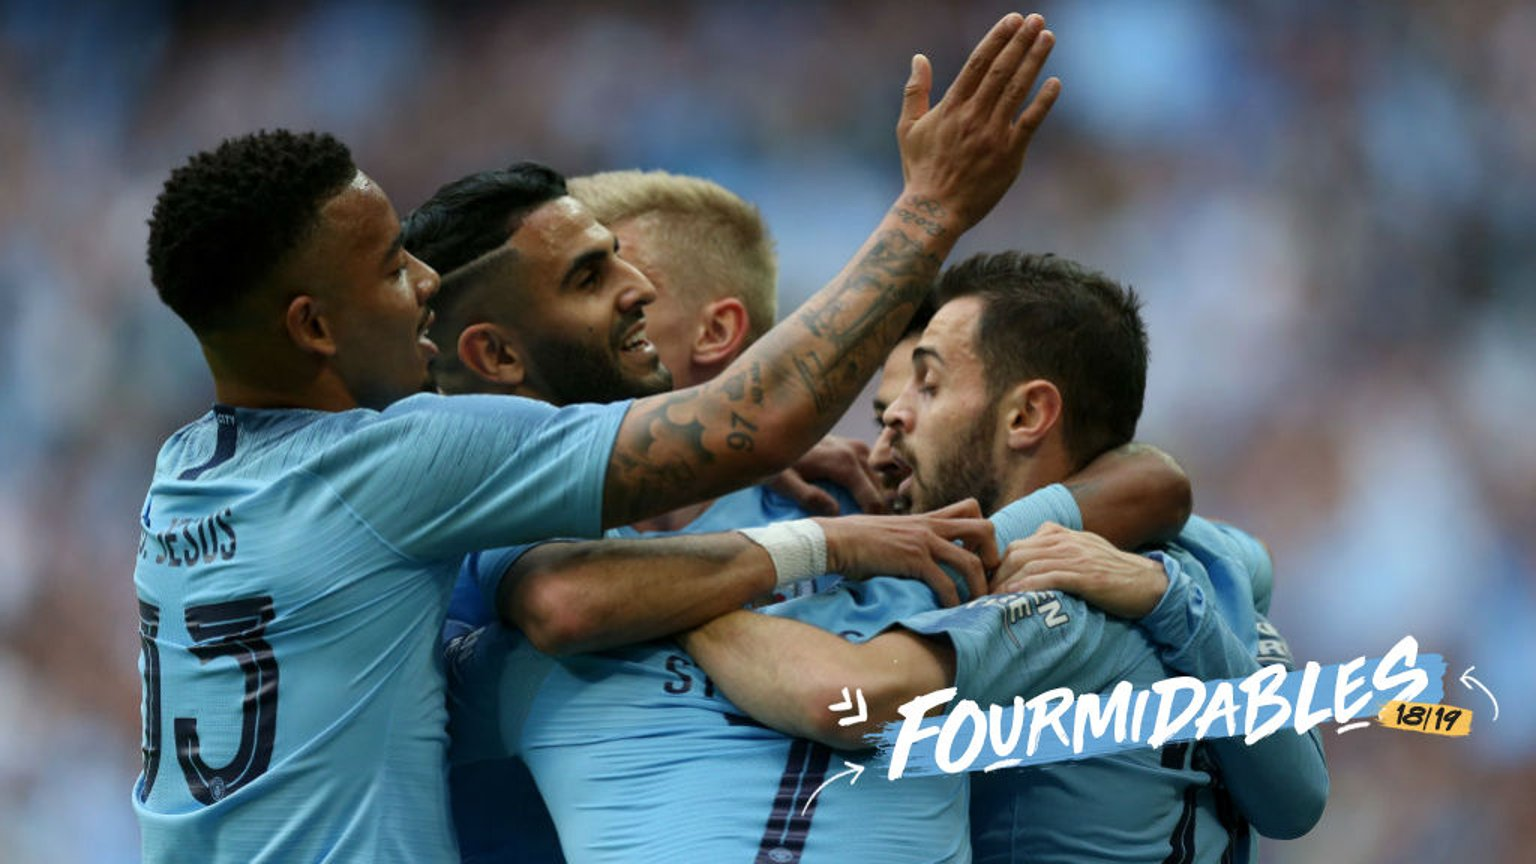 FOURMIDABLES: City have win the 2019 FA Cup and completed an historic season